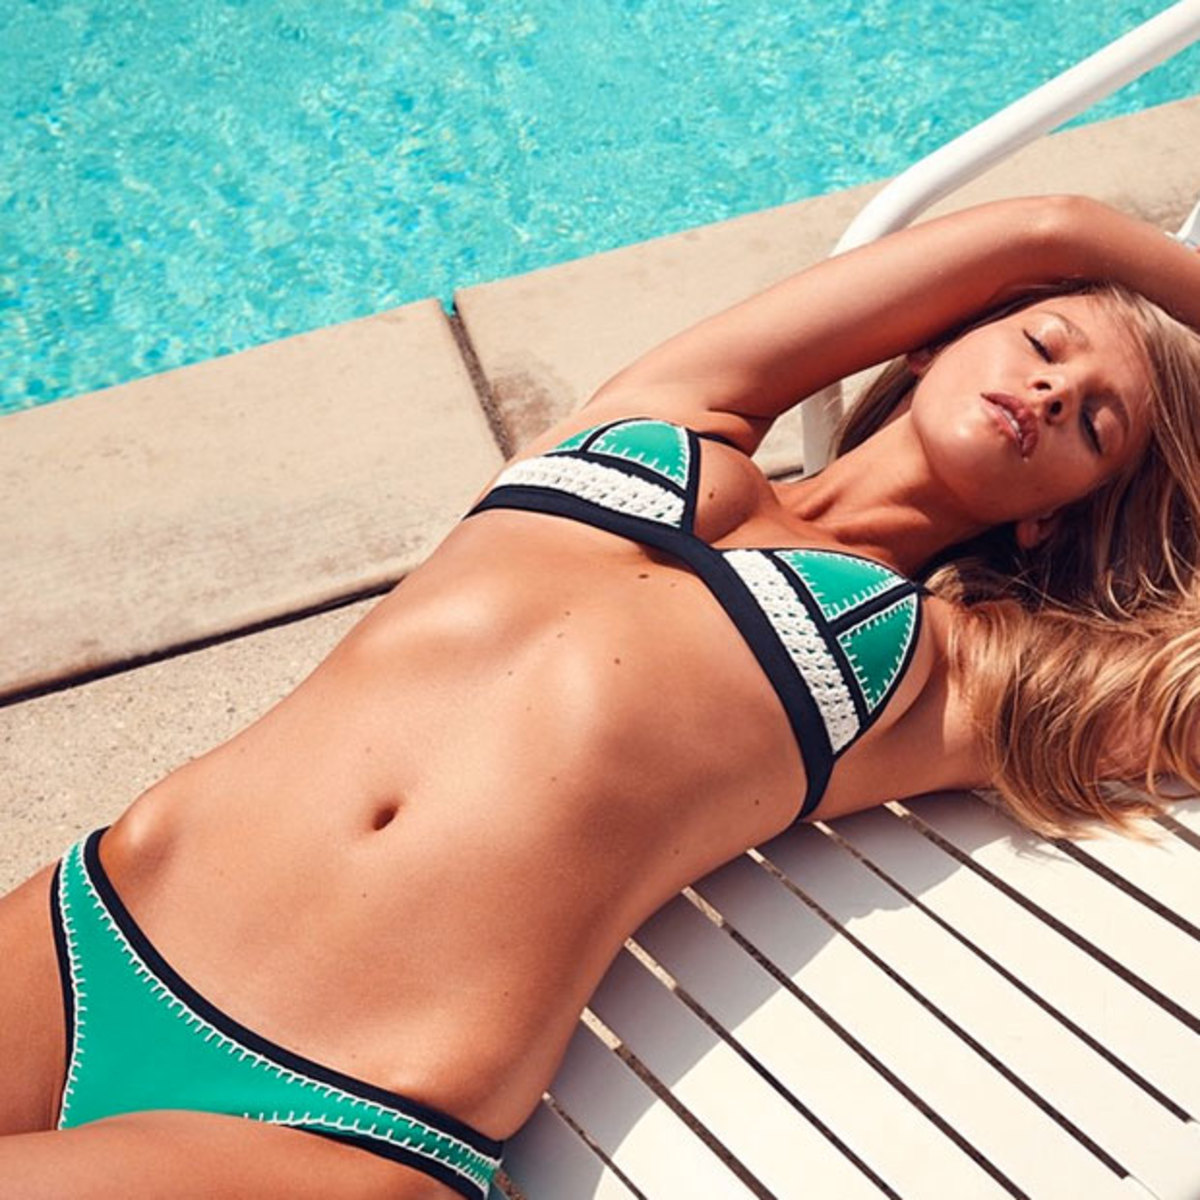 The FARRAH Bikini: Triangl's Latest Collection Neoprene + Crochet @marloeshorst wears 'Wild Thing' Shop the 3 Colors | Online Now